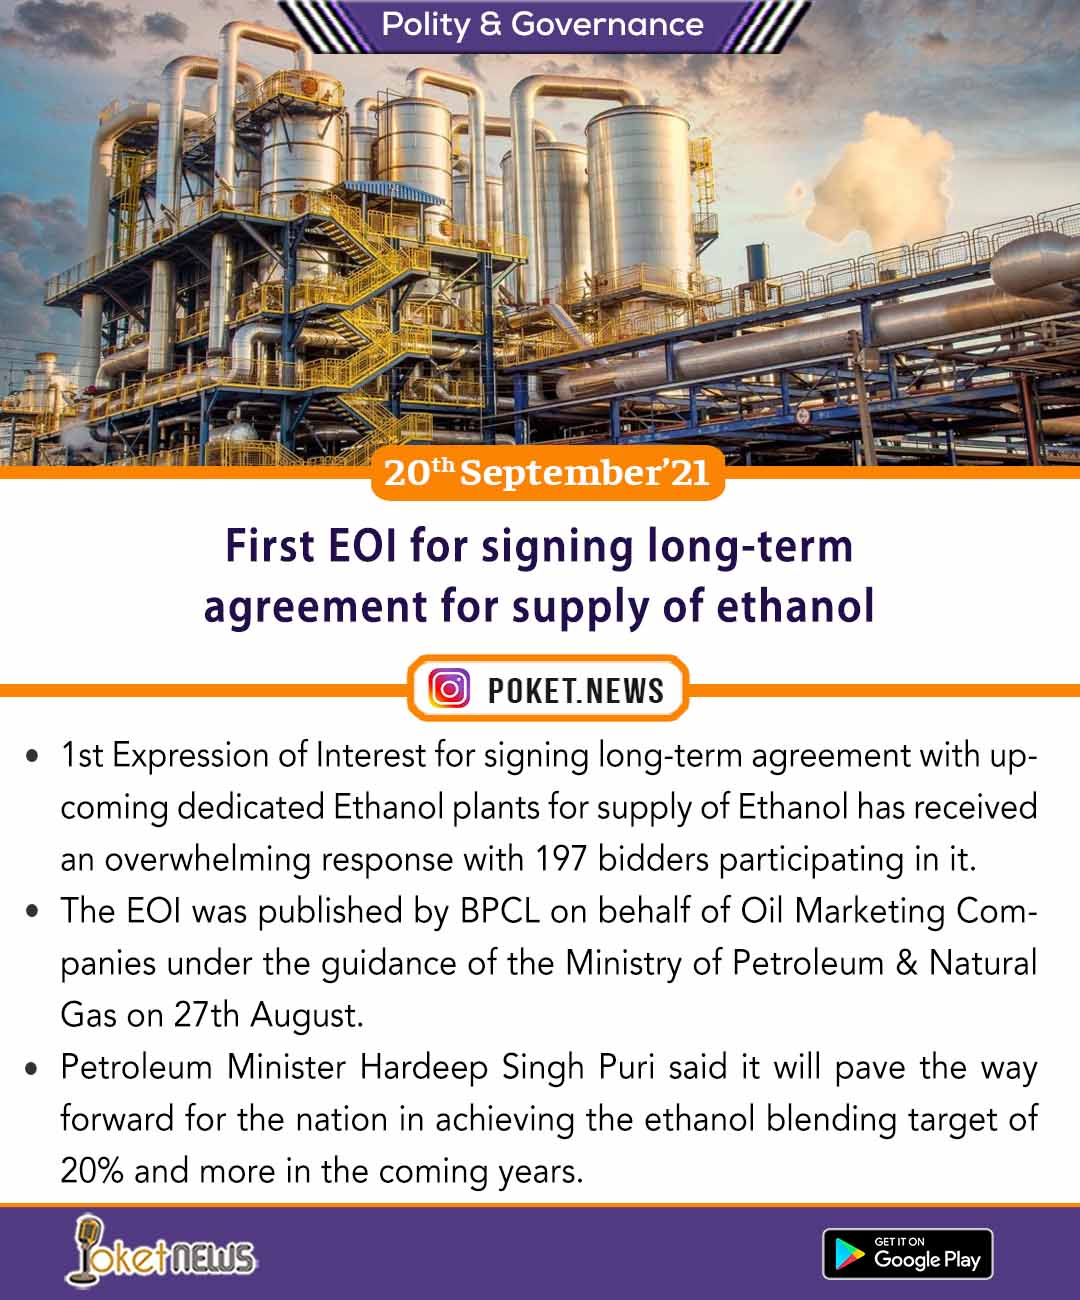 First EOI for signing long-term agreement for supply of ethanol